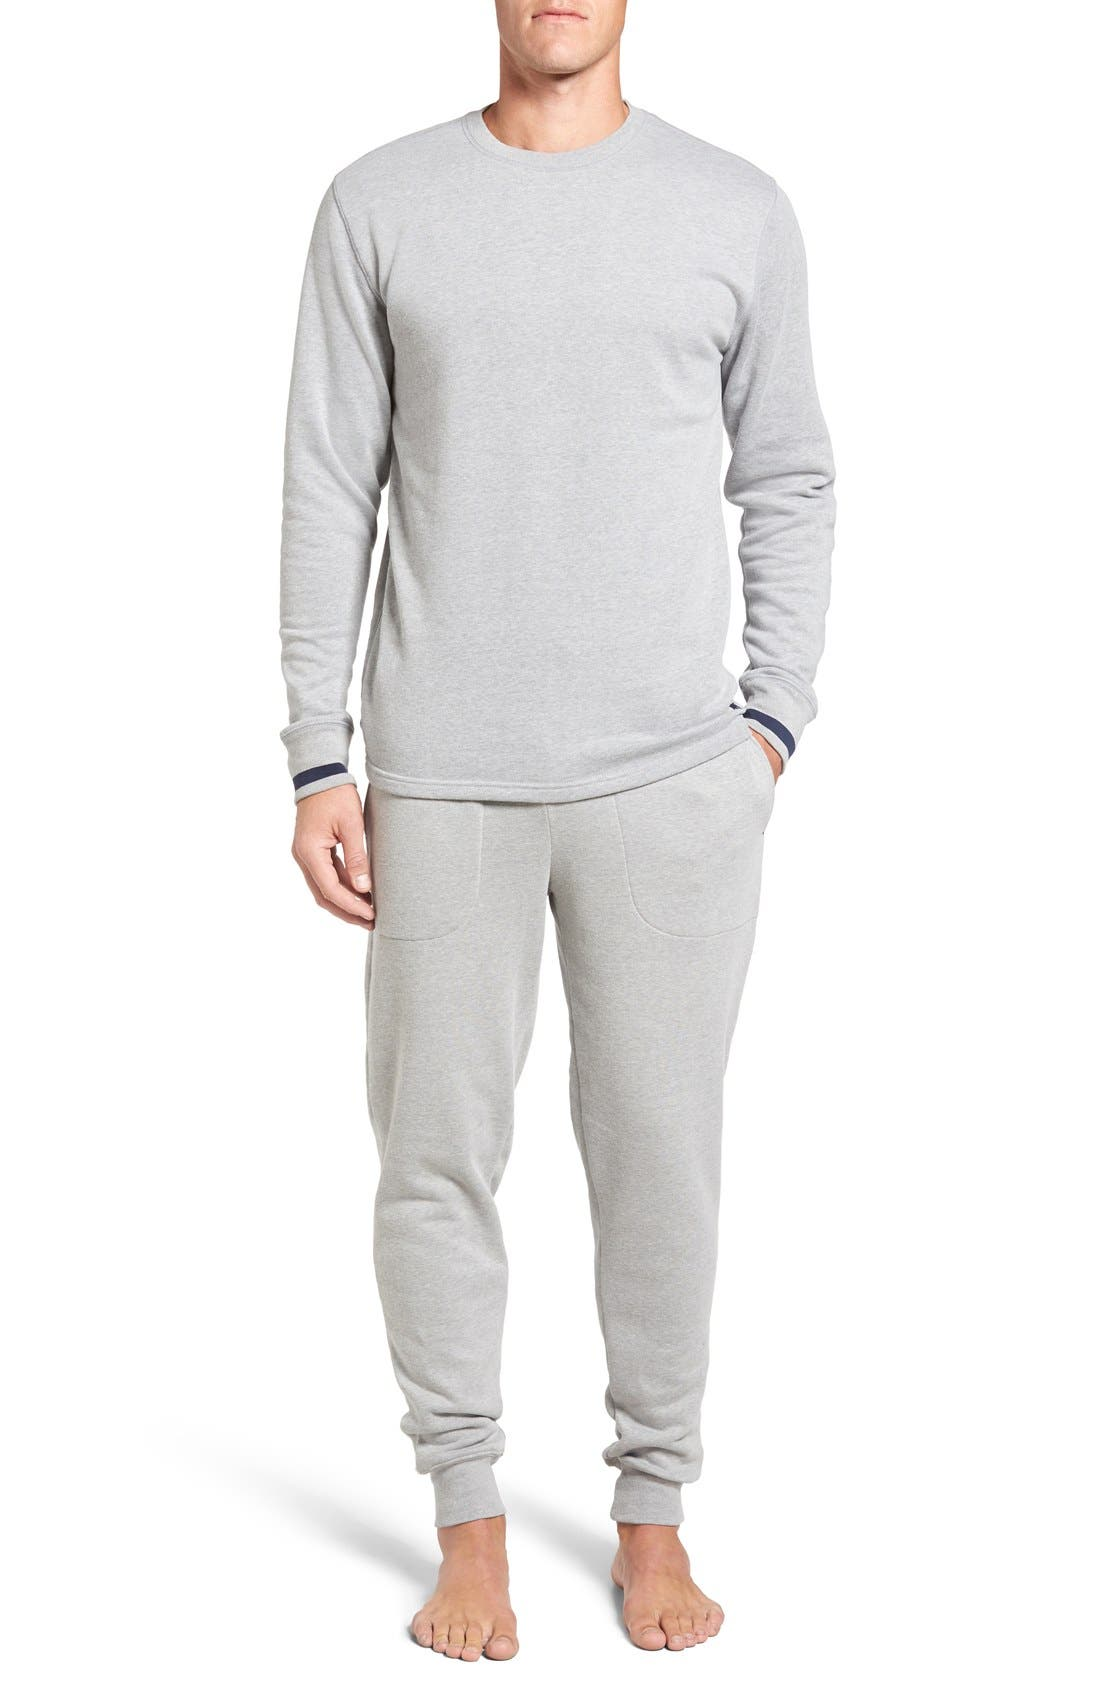 Brushed Jersey Cotton Blend Crewneck Sweatshirt,                             Alternate thumbnail 10, color,                             ANDOVER HEATHER GREY